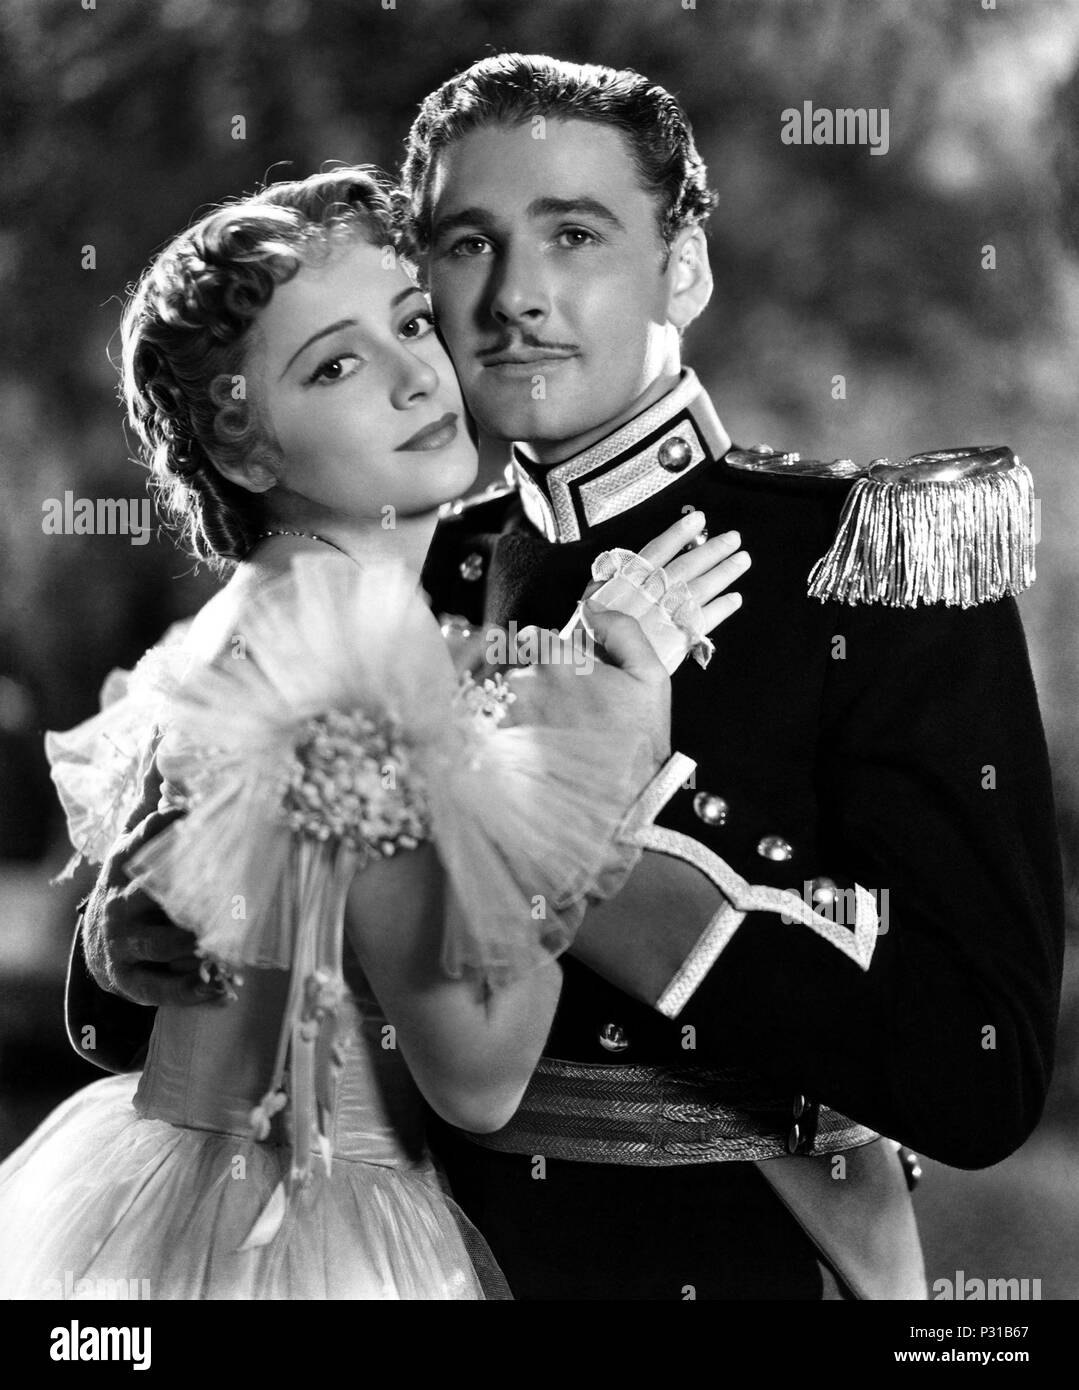 Original Film Title: THE CHARGE OF THE LIGHT BRIGADE.  English Title: THE CHARGE OF THE LIGHT BRIGADE.  Film Director: MICHAEL CURTIZ.  Year: 1936.  Stars: OLIVIA DE HAVILLAND; ERROL FLYNN. Credit: WARNER BROTHERS / Album - Stock Image